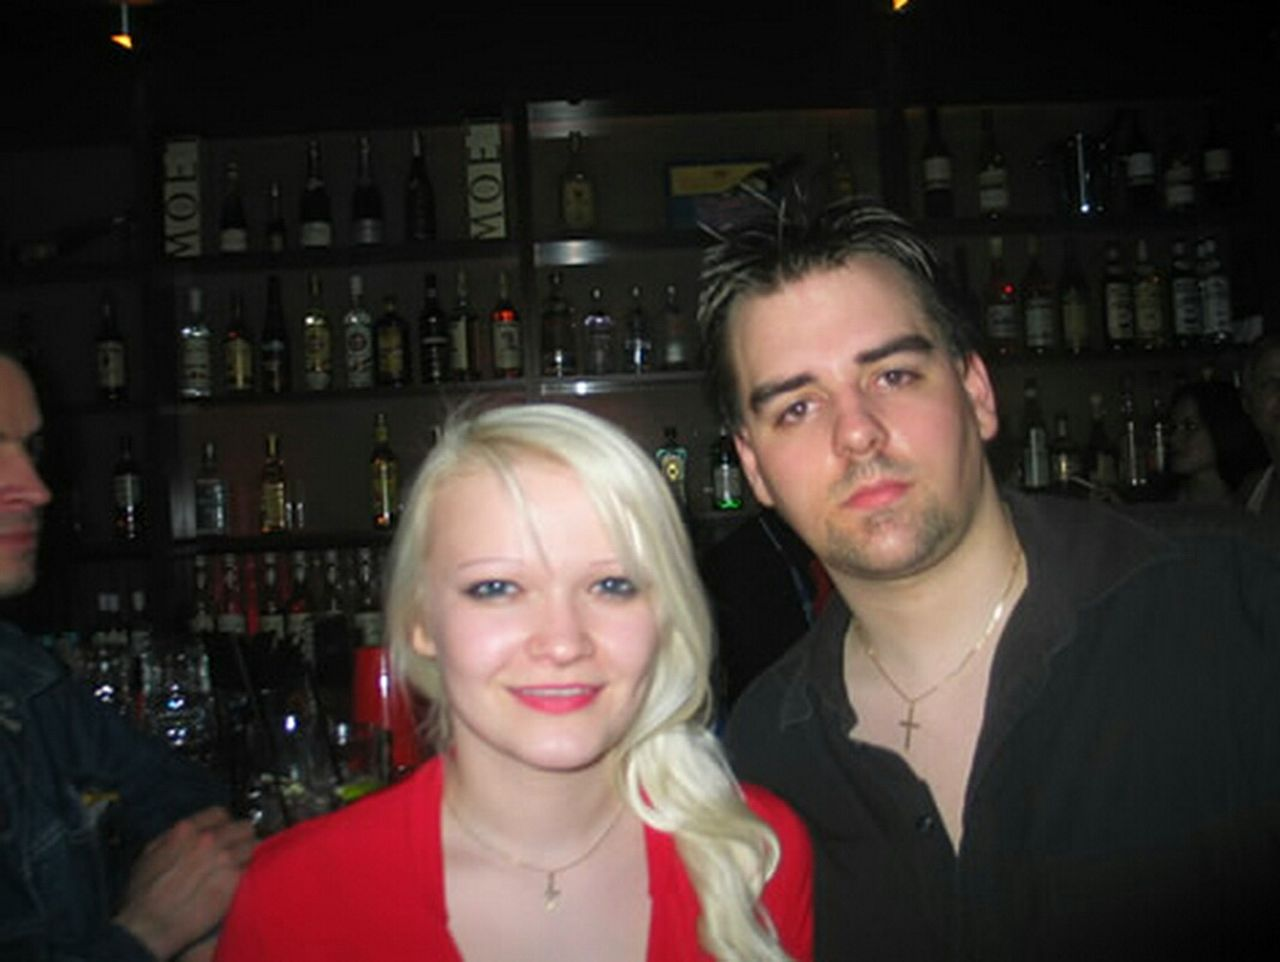 two people, alcohol, headshot, adults only, looking at camera, happy hour, blond hair, portrait, front view, indoors, young adult, casual clothing, people, bar - drink establishment, togetherness, young women, drink, happiness, adult, nightlife, men, smiling, well-dressed, human body part, night, friendship, close-up